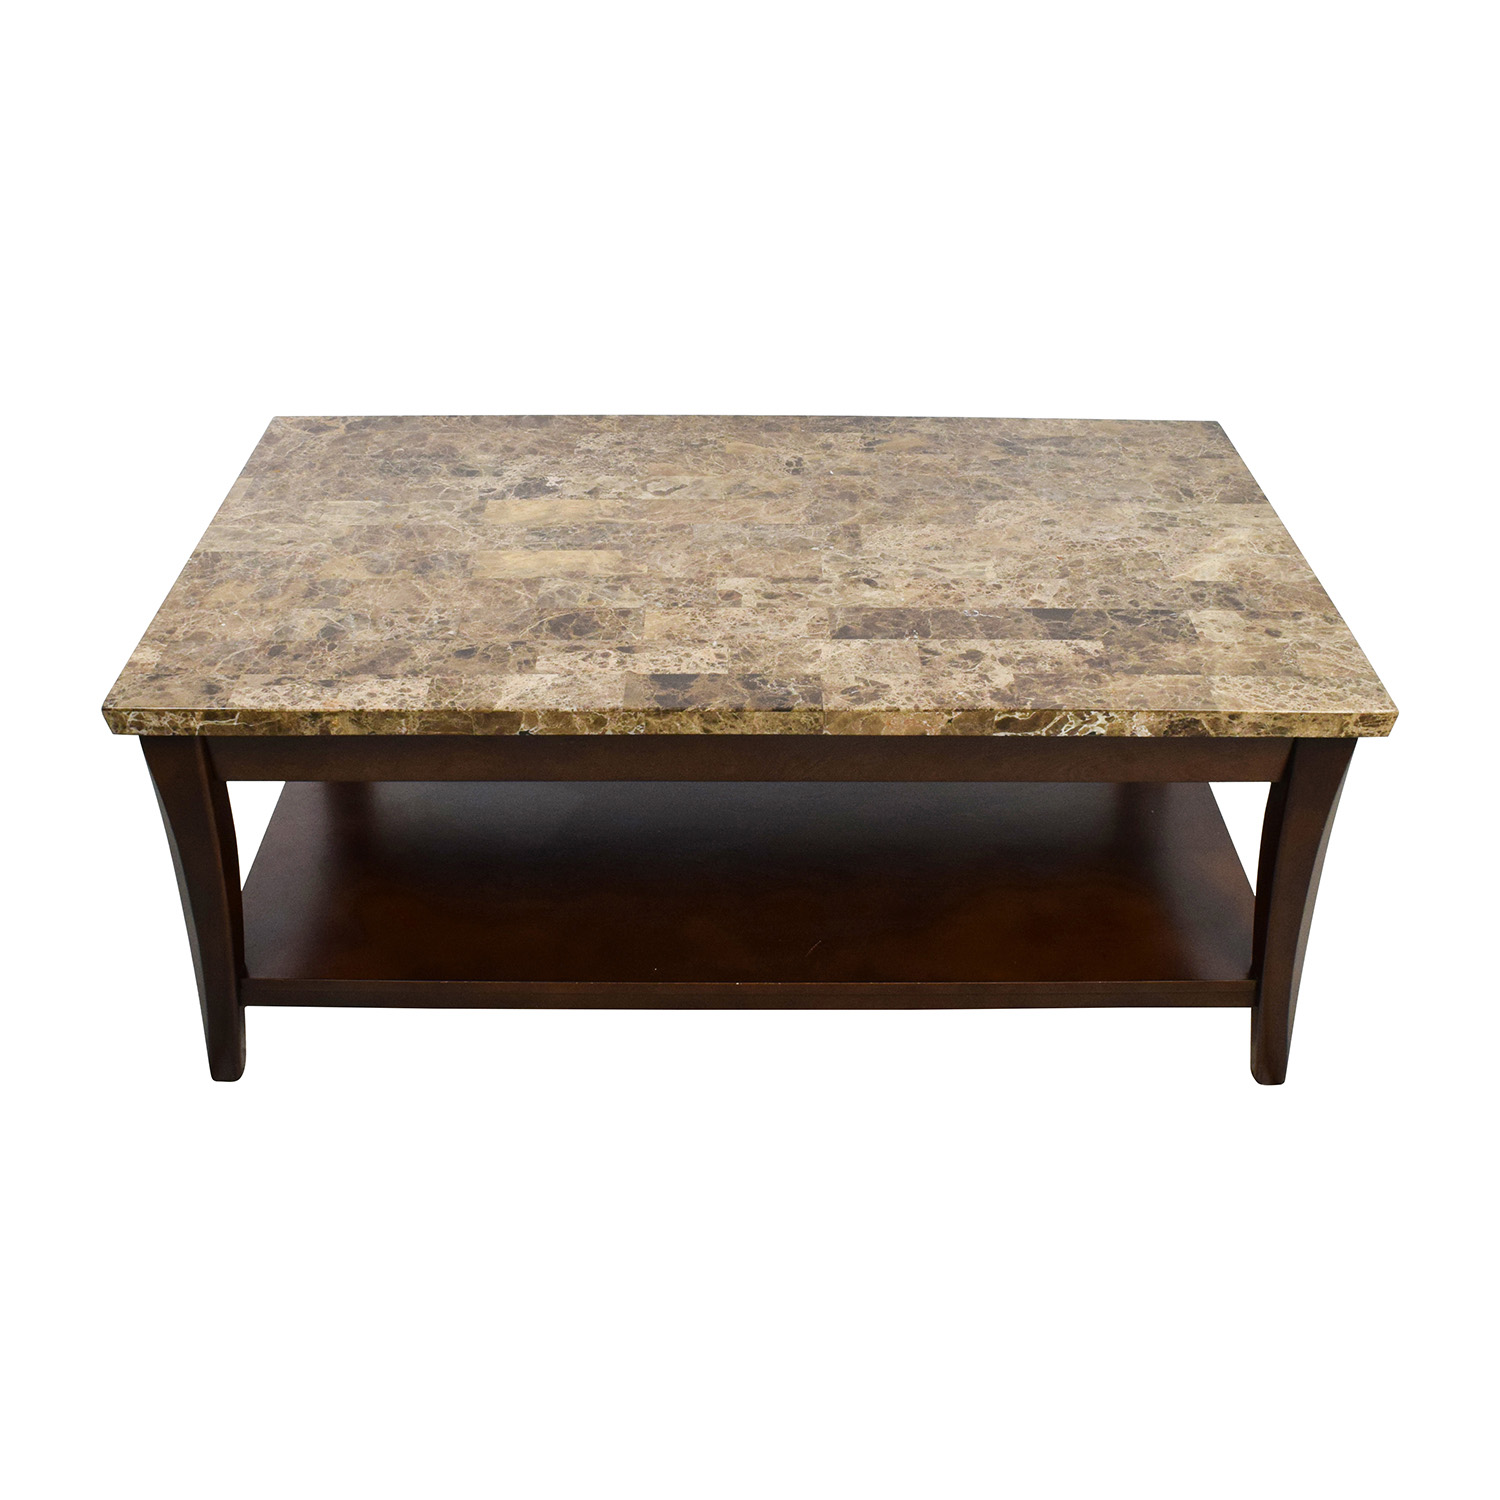 76% OFF West Elm West Elm Collapsible Coffee Table Tables